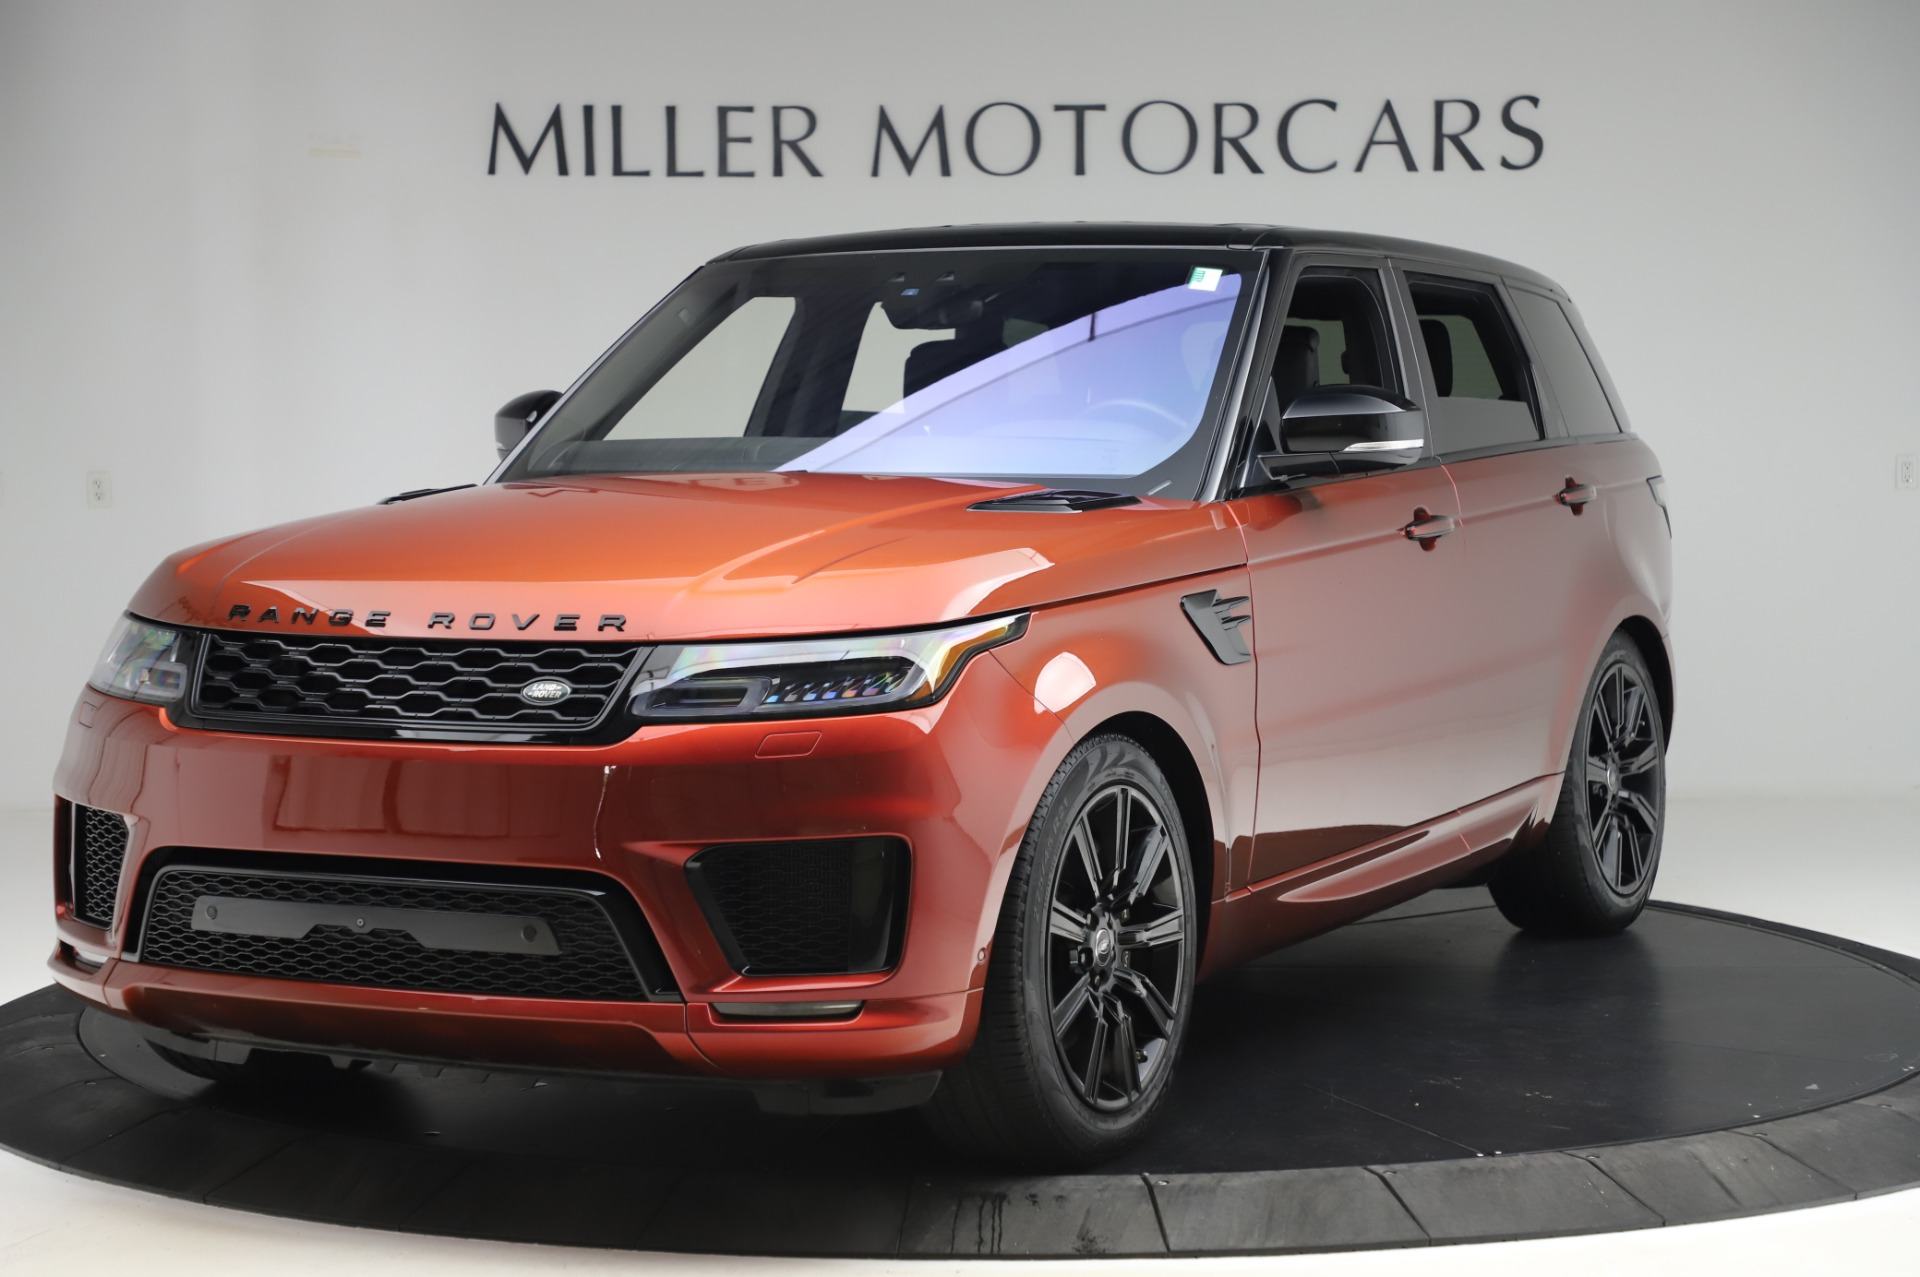 Used 2019 Land Rover Range Rover Sport Autobiography for sale Sold at Rolls-Royce Motor Cars Greenwich in Greenwich CT 06830 1